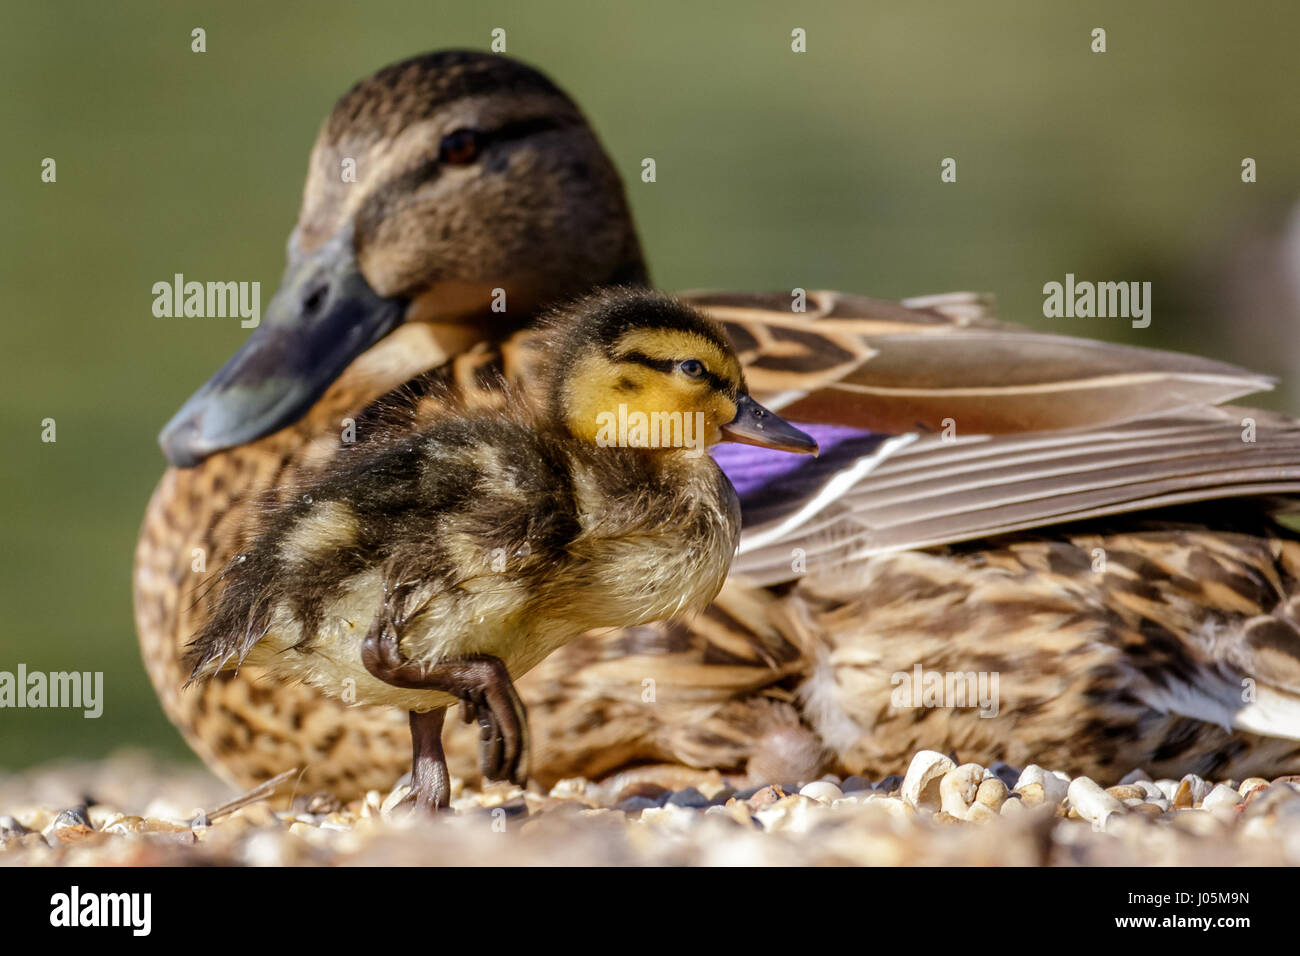 Mallard duckling (Anas platyrhynchos) with watchful mother or parent behind - Stock Image